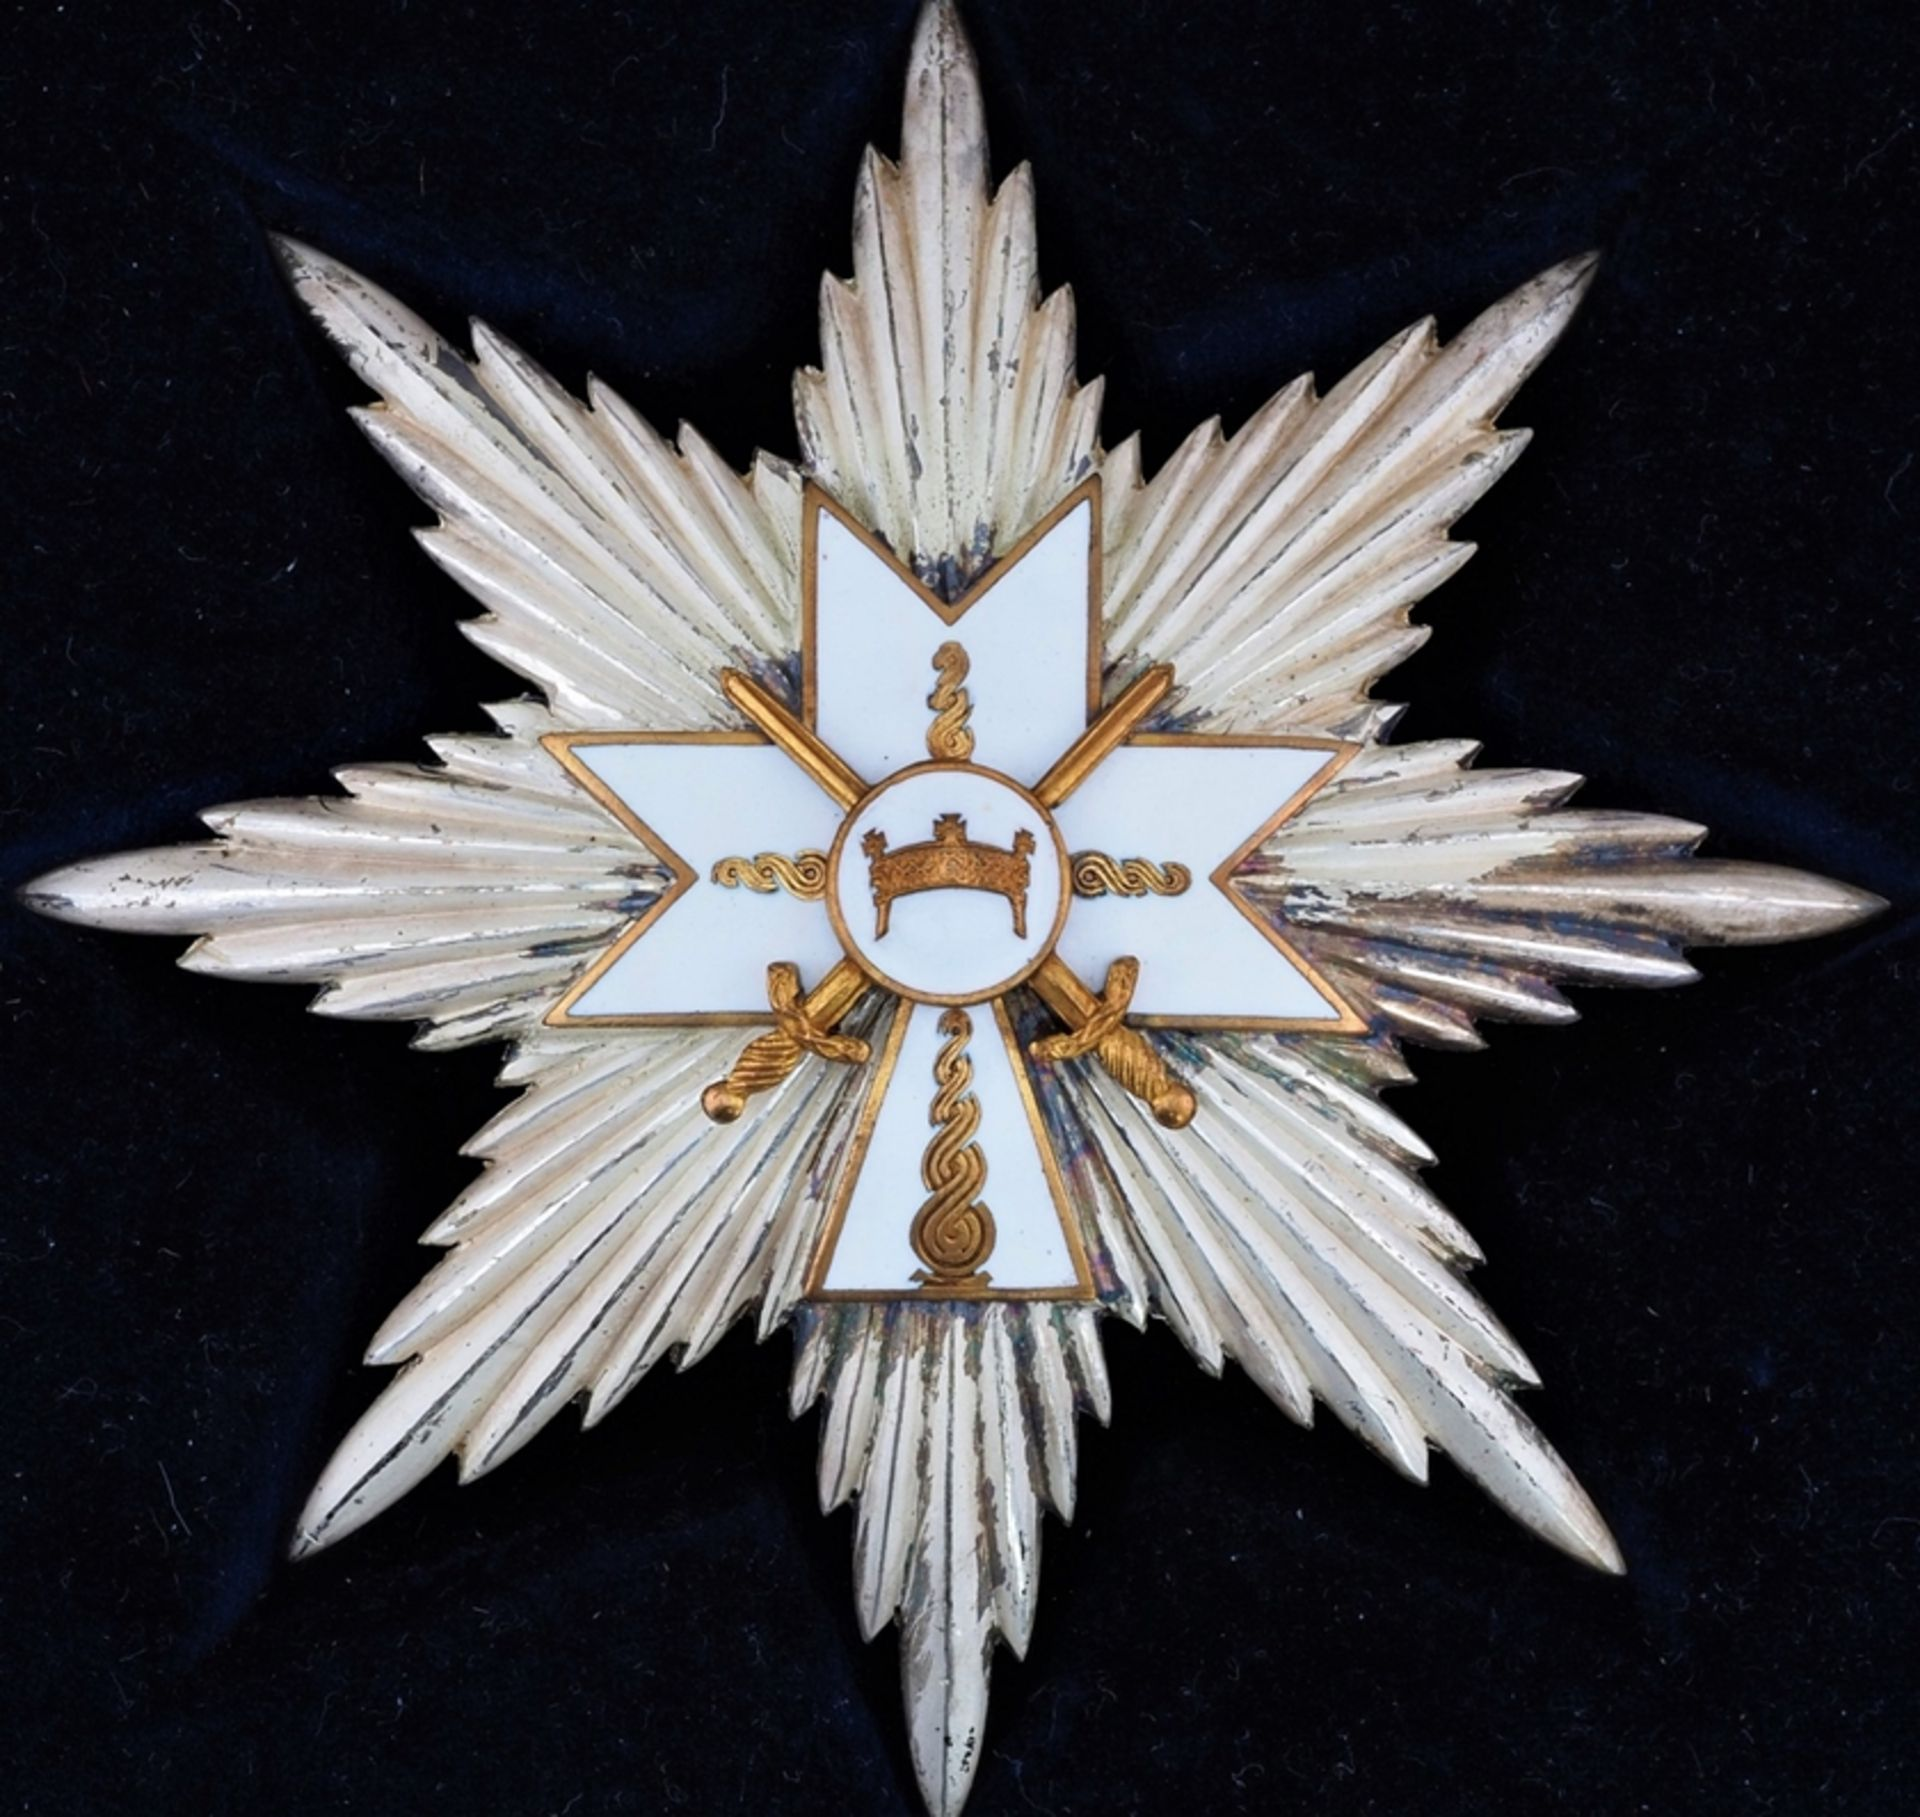 World War 2, Third Reich, Medals & Decorations Legacy: Commanding General of the Luftwaffe (Wehrmac - Image 15 of 27